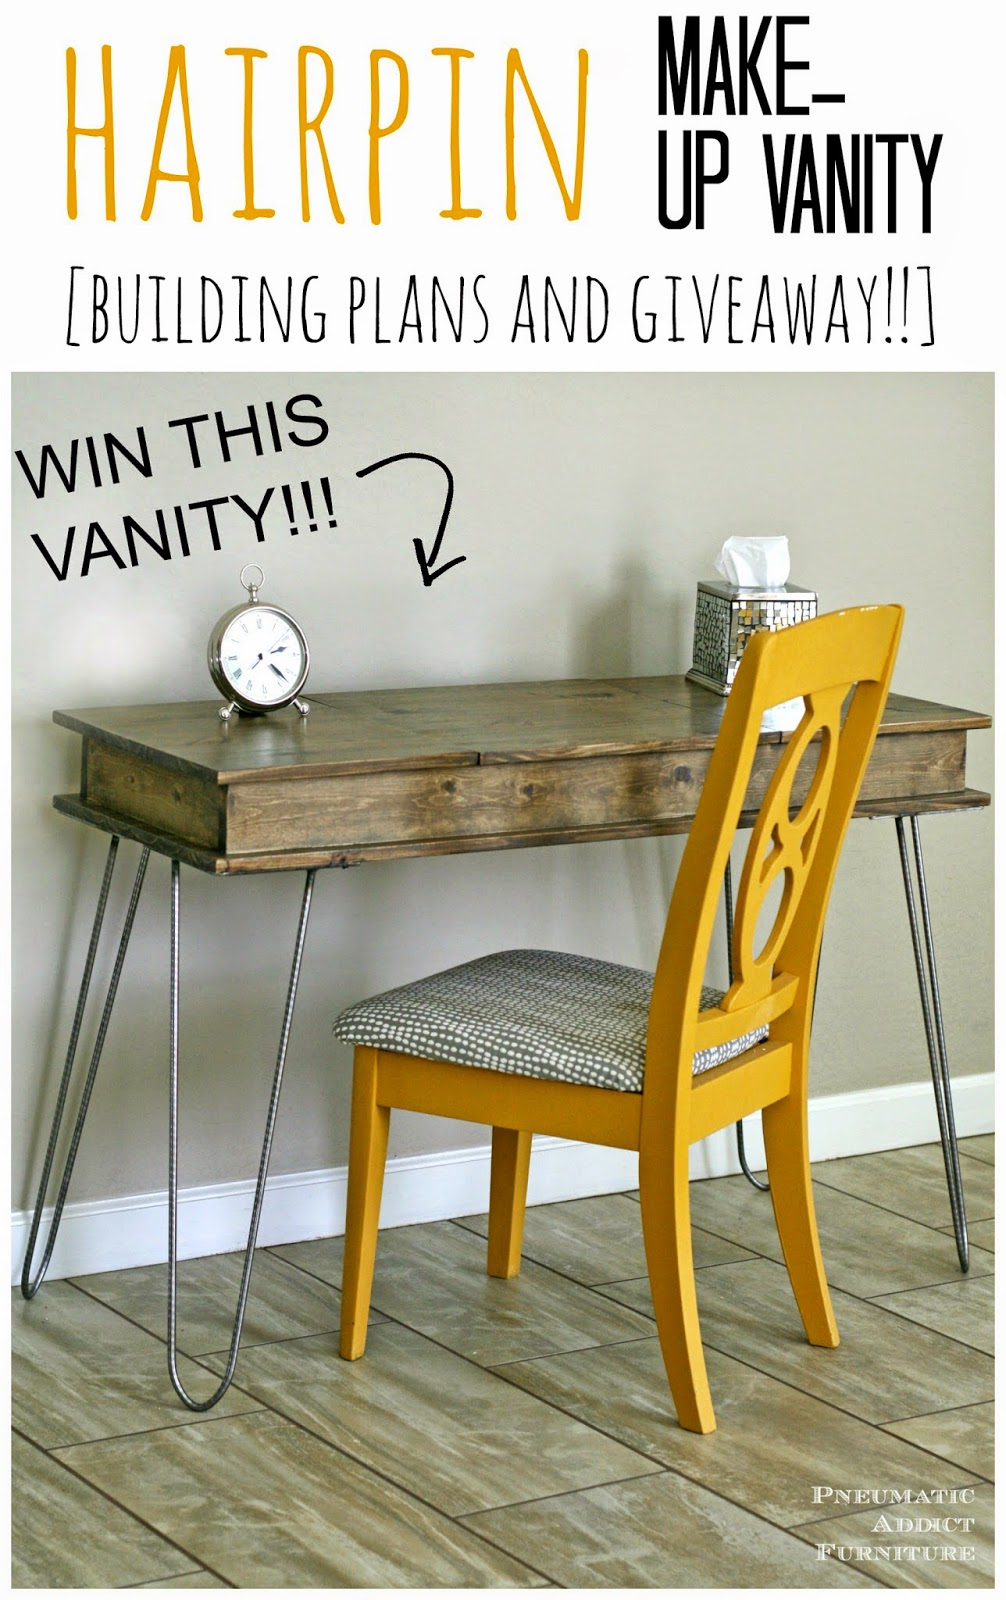 DIY Hairpin Leg, Make Up Vanity. Free Building Plans And Giveaway!